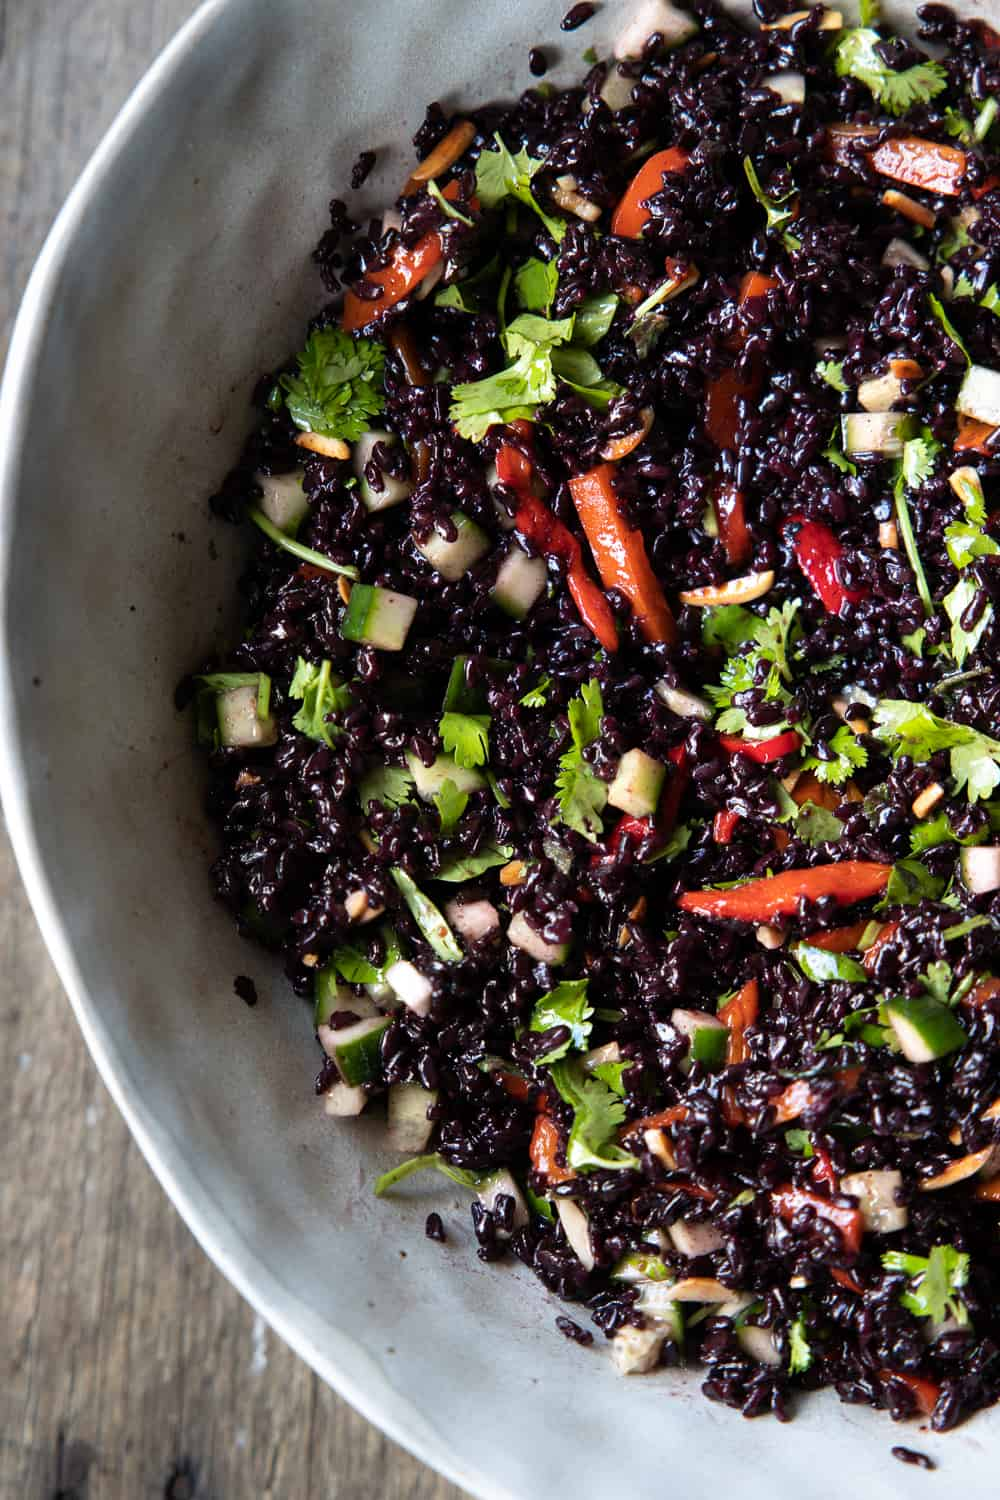 Close up of the black rice salad from above